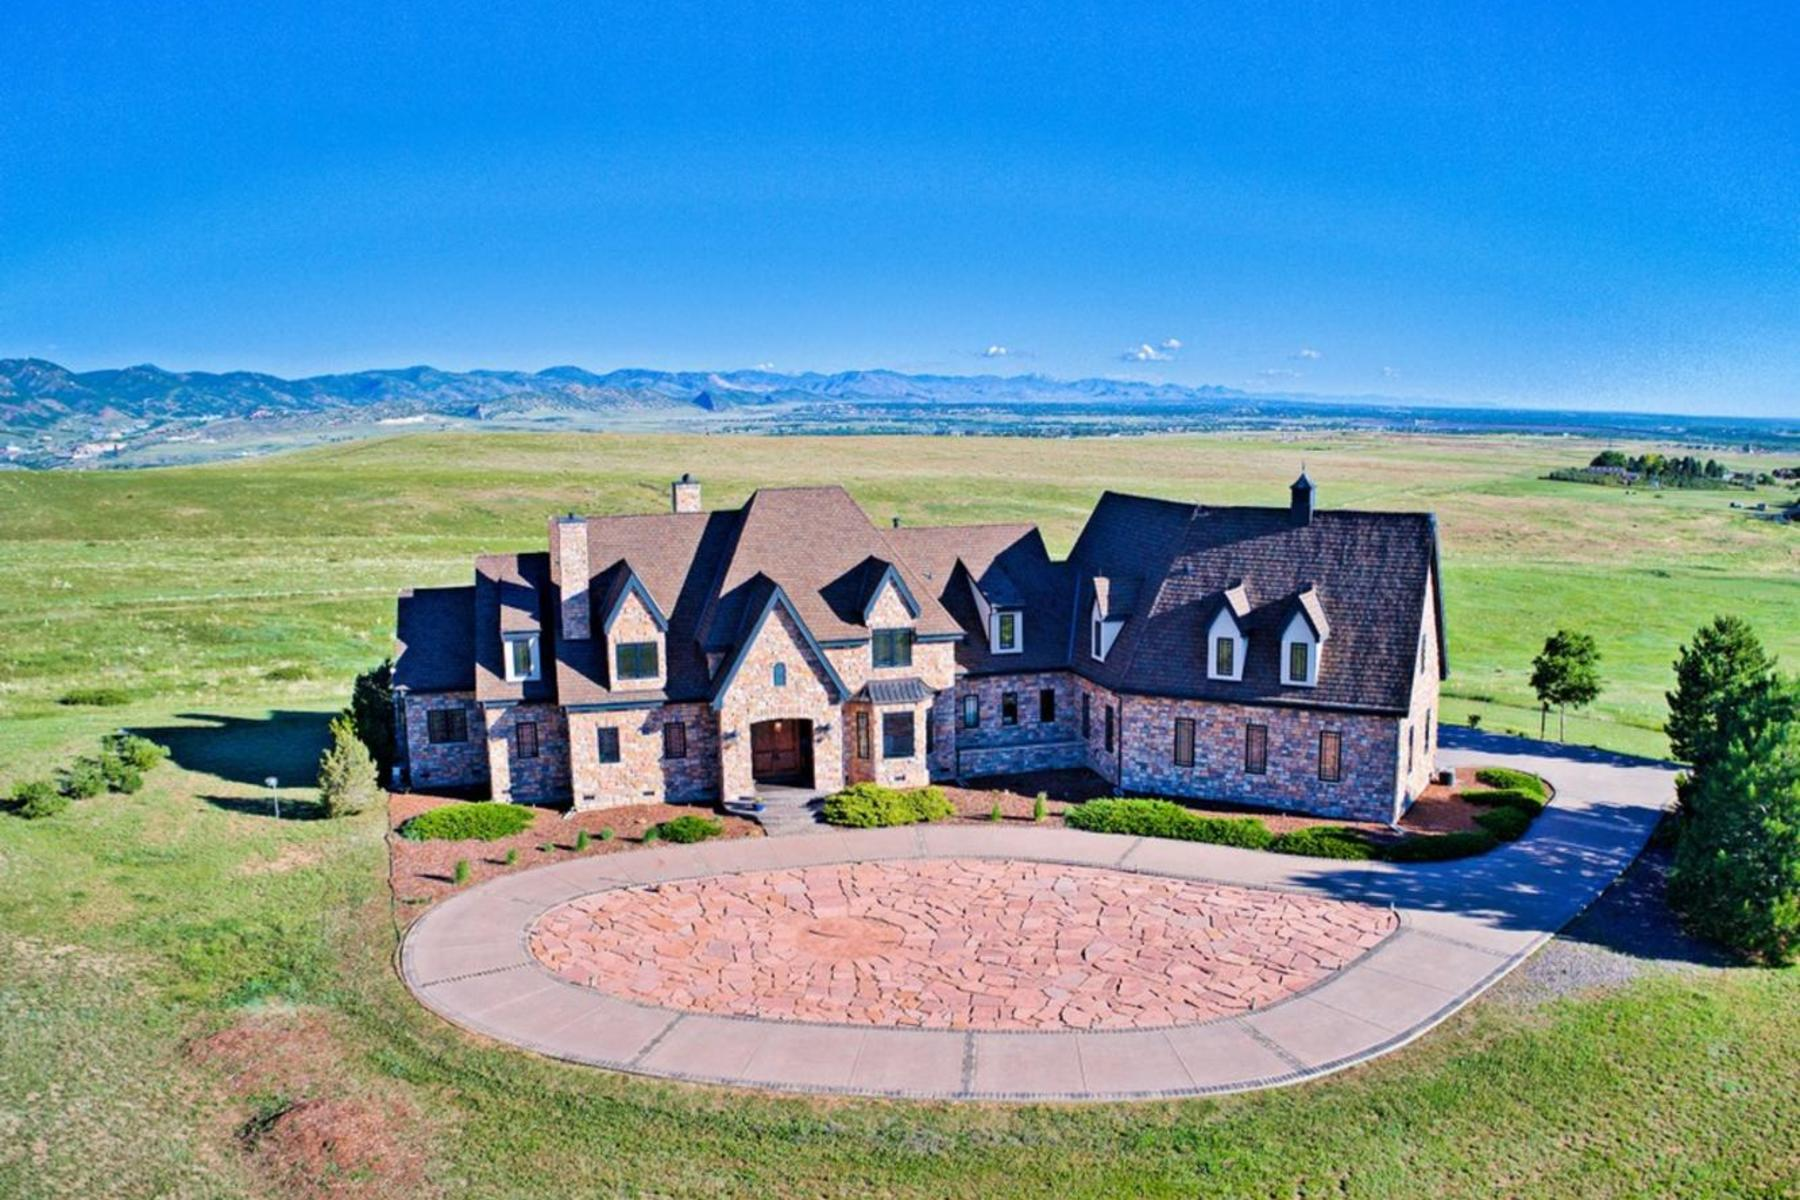 Single Family Home for Active at 360 Degree Mesmerizing Views of the Front Range, Mountains & City 7755 North Moore Road Littleton, Colorado 80125 United States